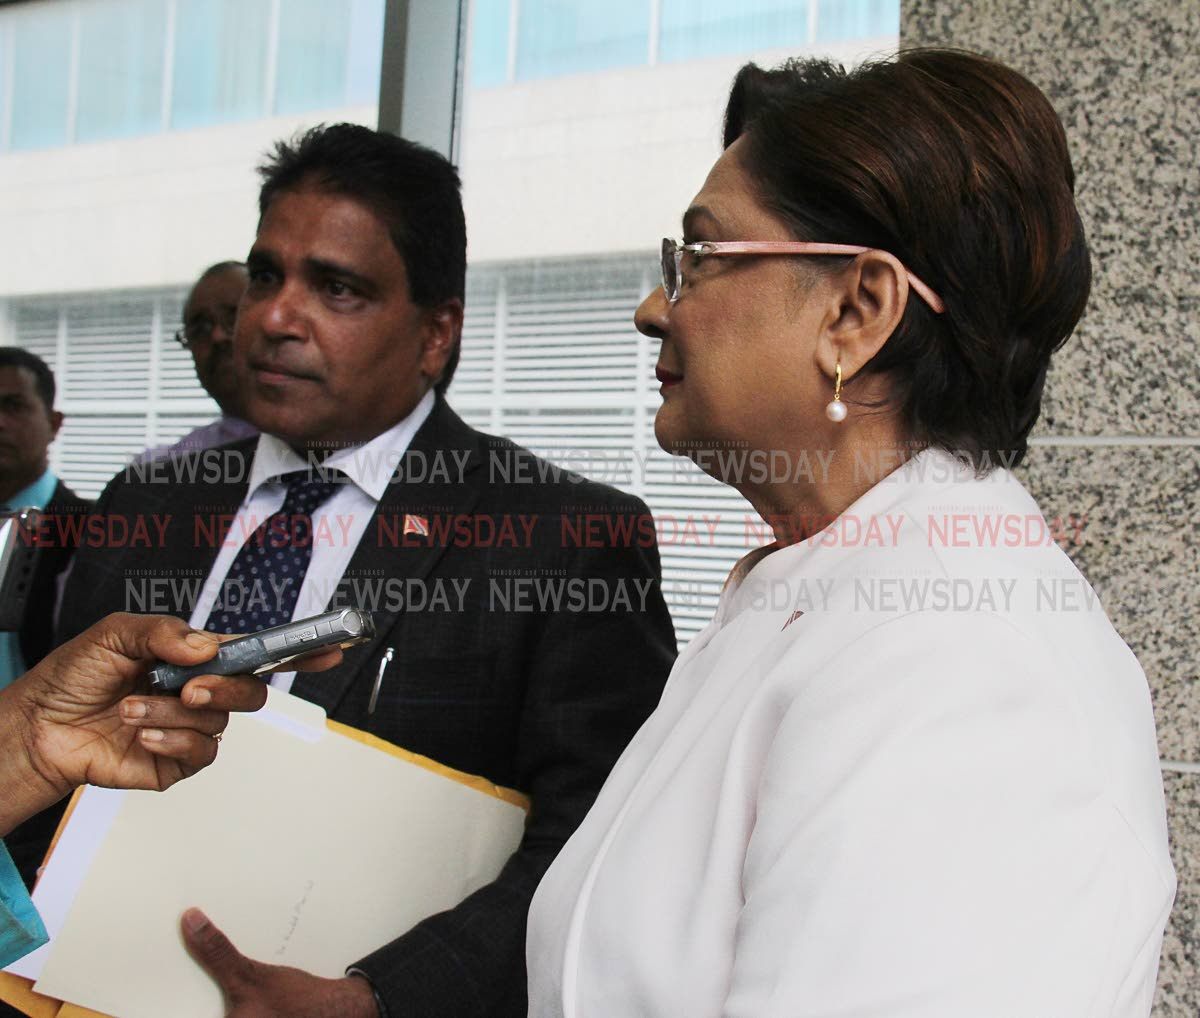 Opposition Leader Kamla Persad-Bissessar and Oropouche East MP Dr Roodal Moonilal speak with media outside Parliament in Port of Spain, on Wednesday. PHOTO BY ANGELO M MARCELLE